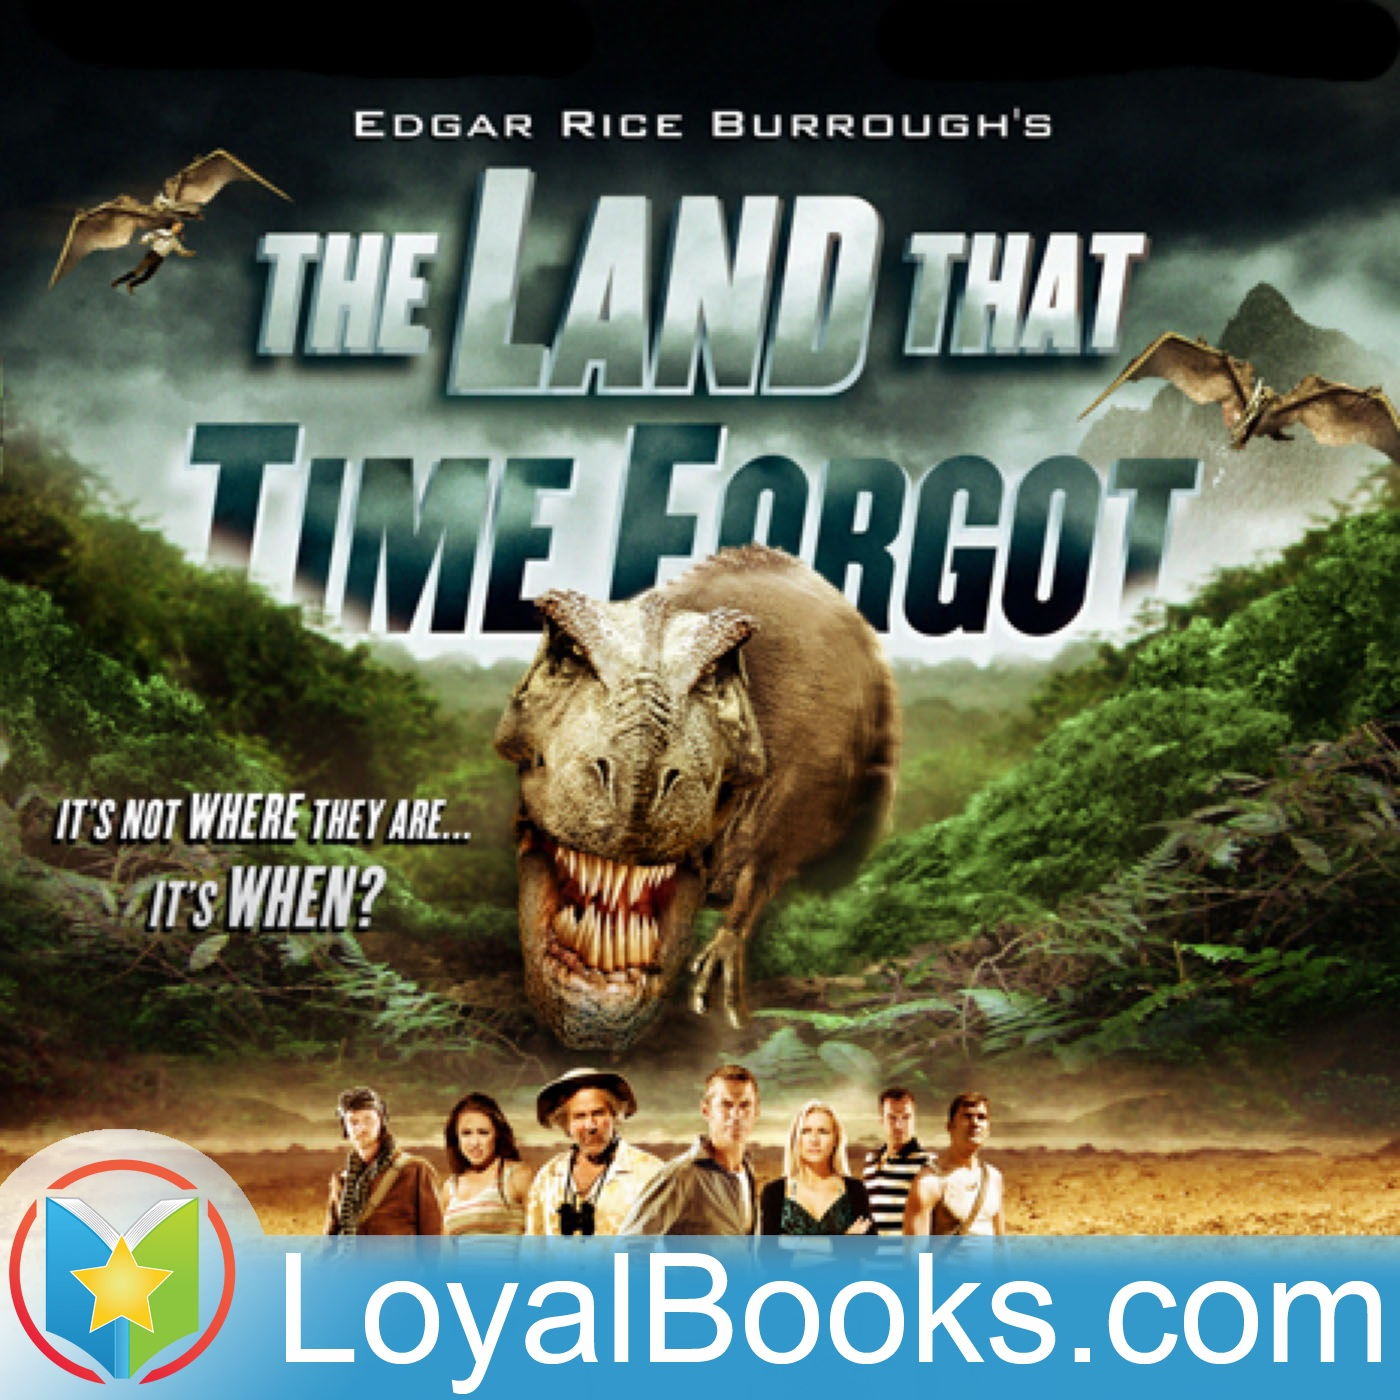 <![CDATA[The Land that Time Forgot by Edgar Rice Burroughs]]>